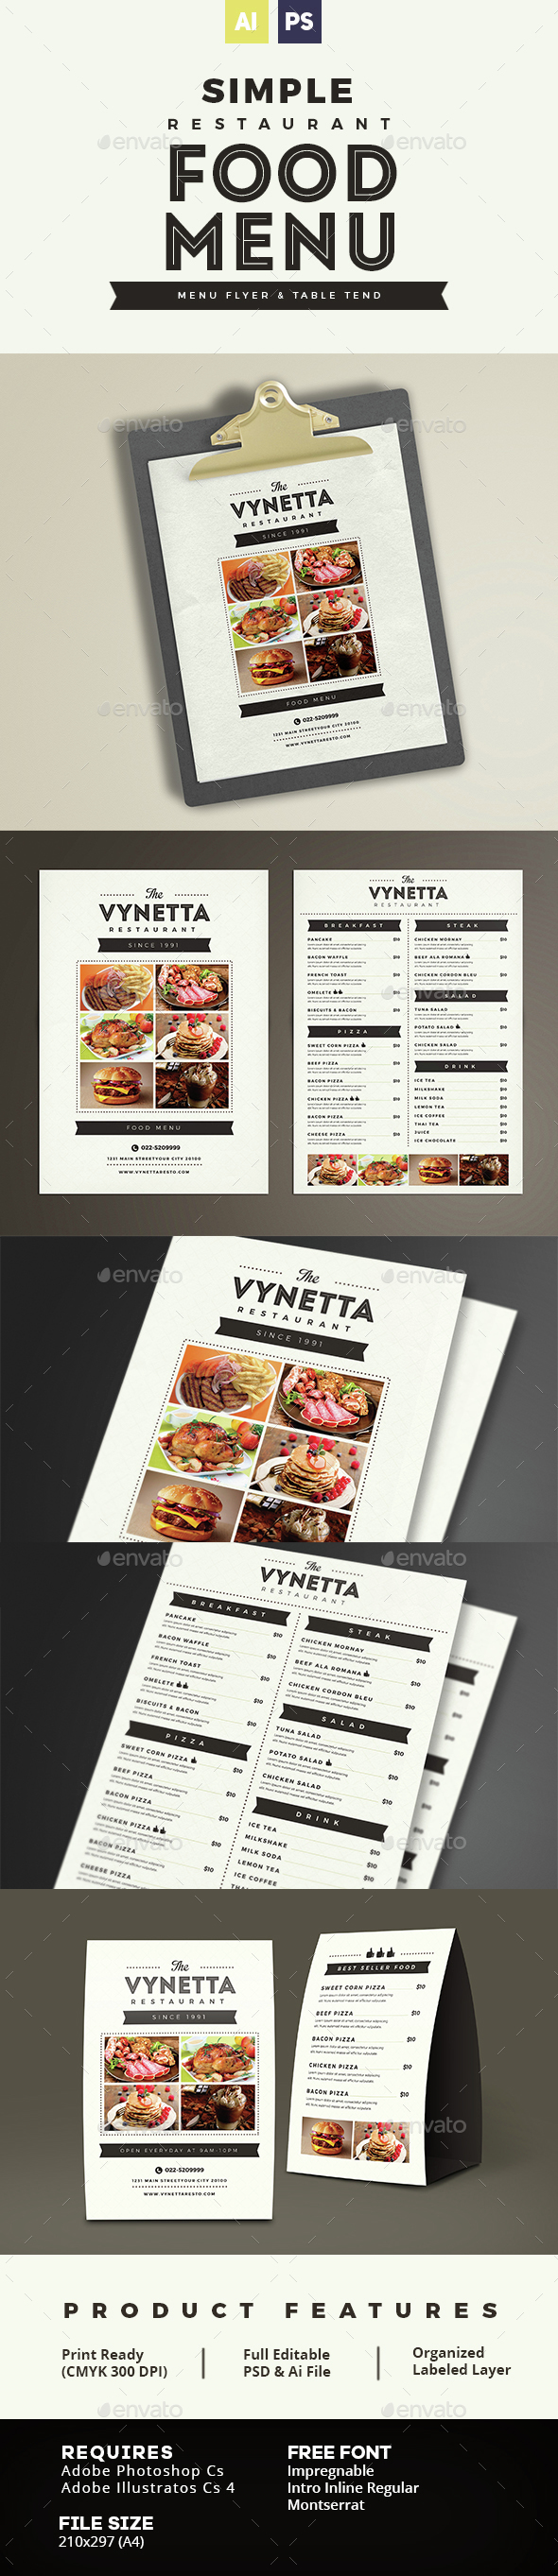 Menu Templates From GraphicRiver (Page 25) Image Preview Food Menus?pageu003d25tempafdu003d73viewu003dlist.  How To Make A Restaurant Menu On Microsoft Word How To ...  How To Make A Food Menu On Microsoft Word